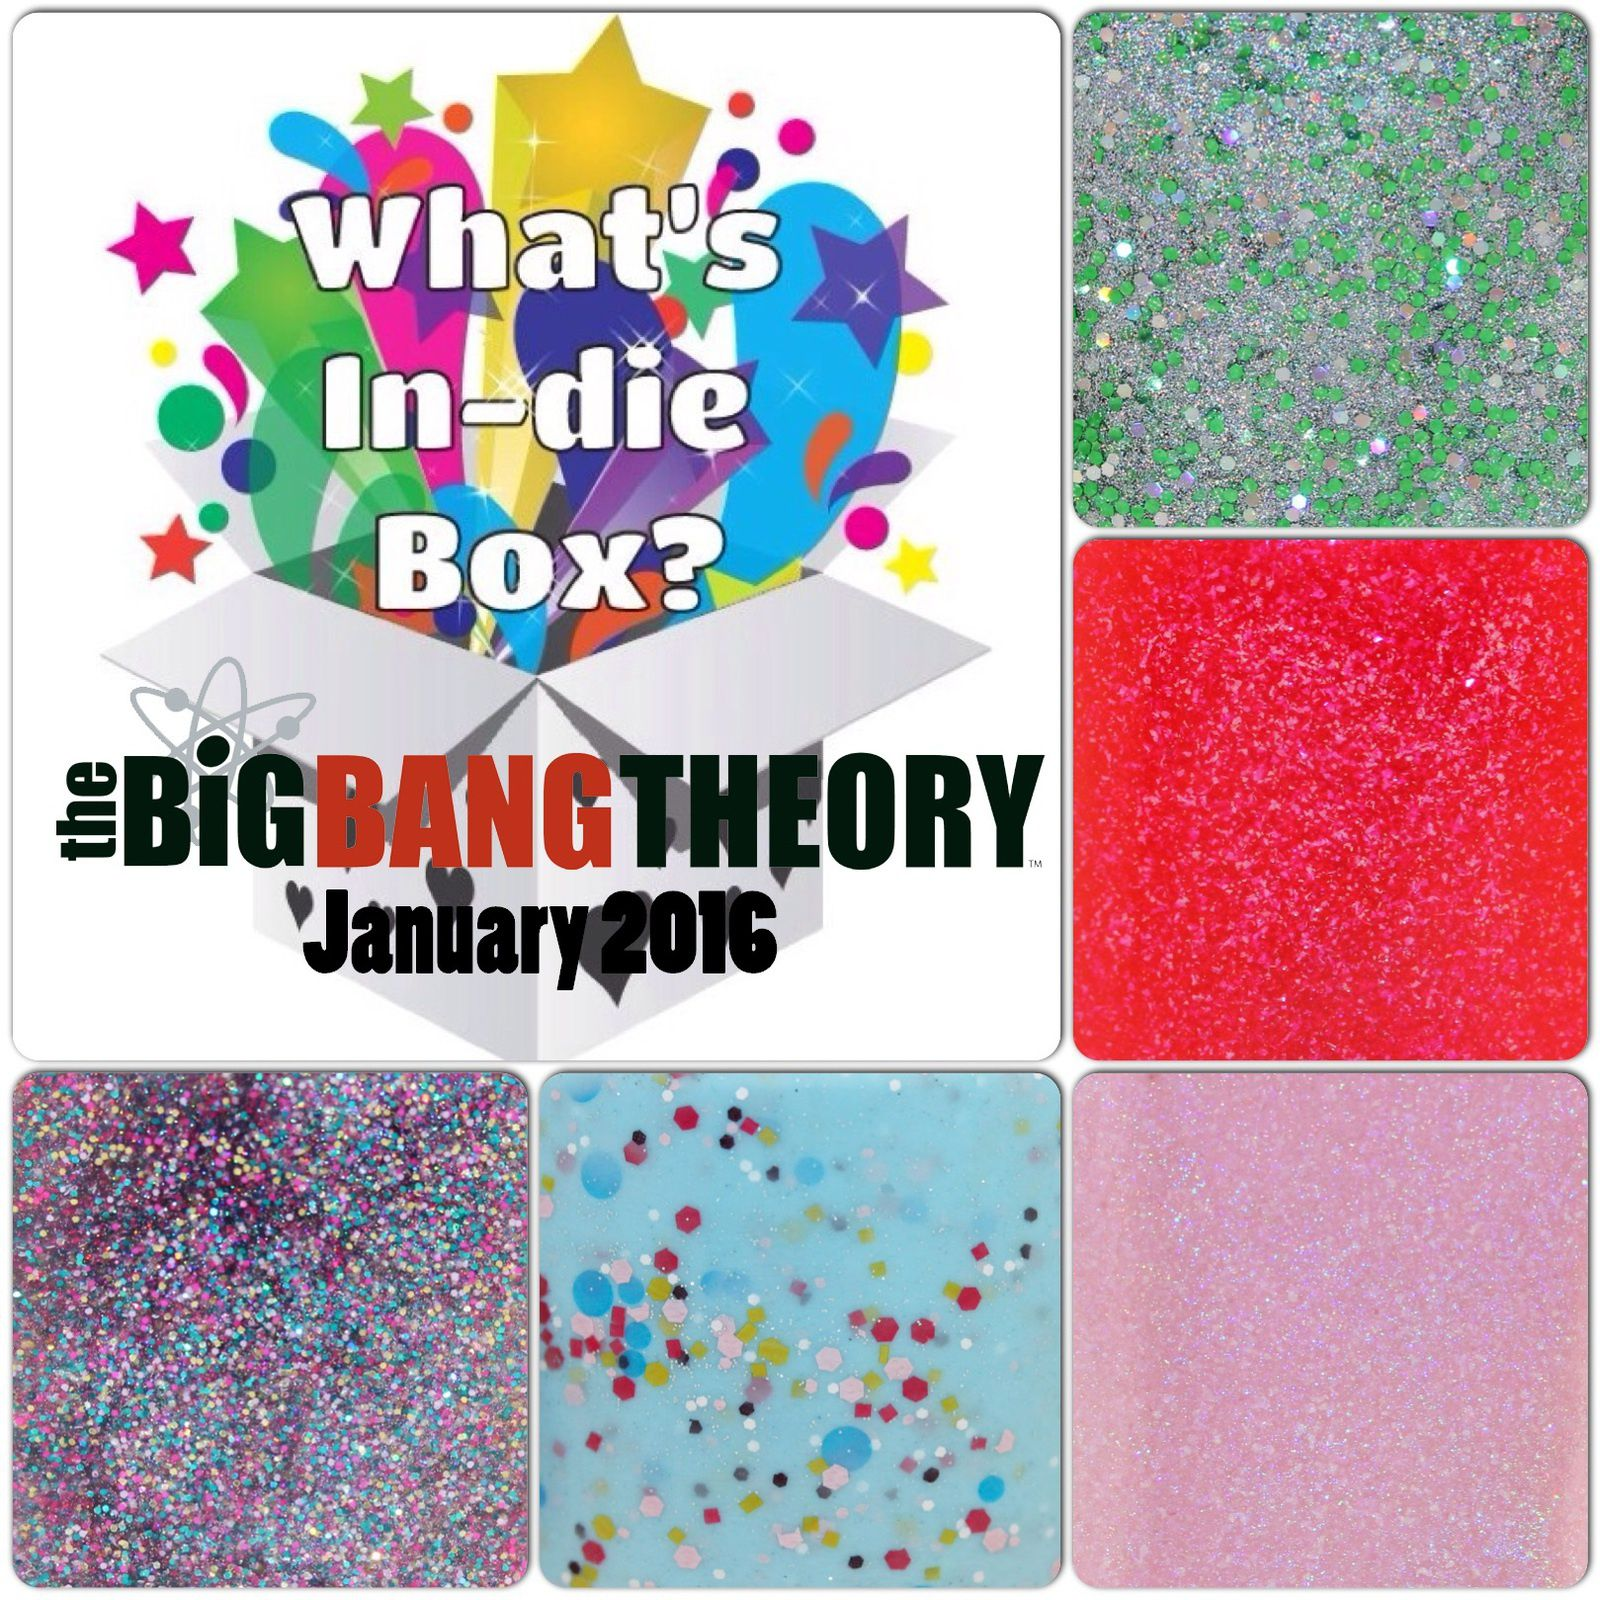 What's Indie Box - January 2016 - The Big Bang Theory